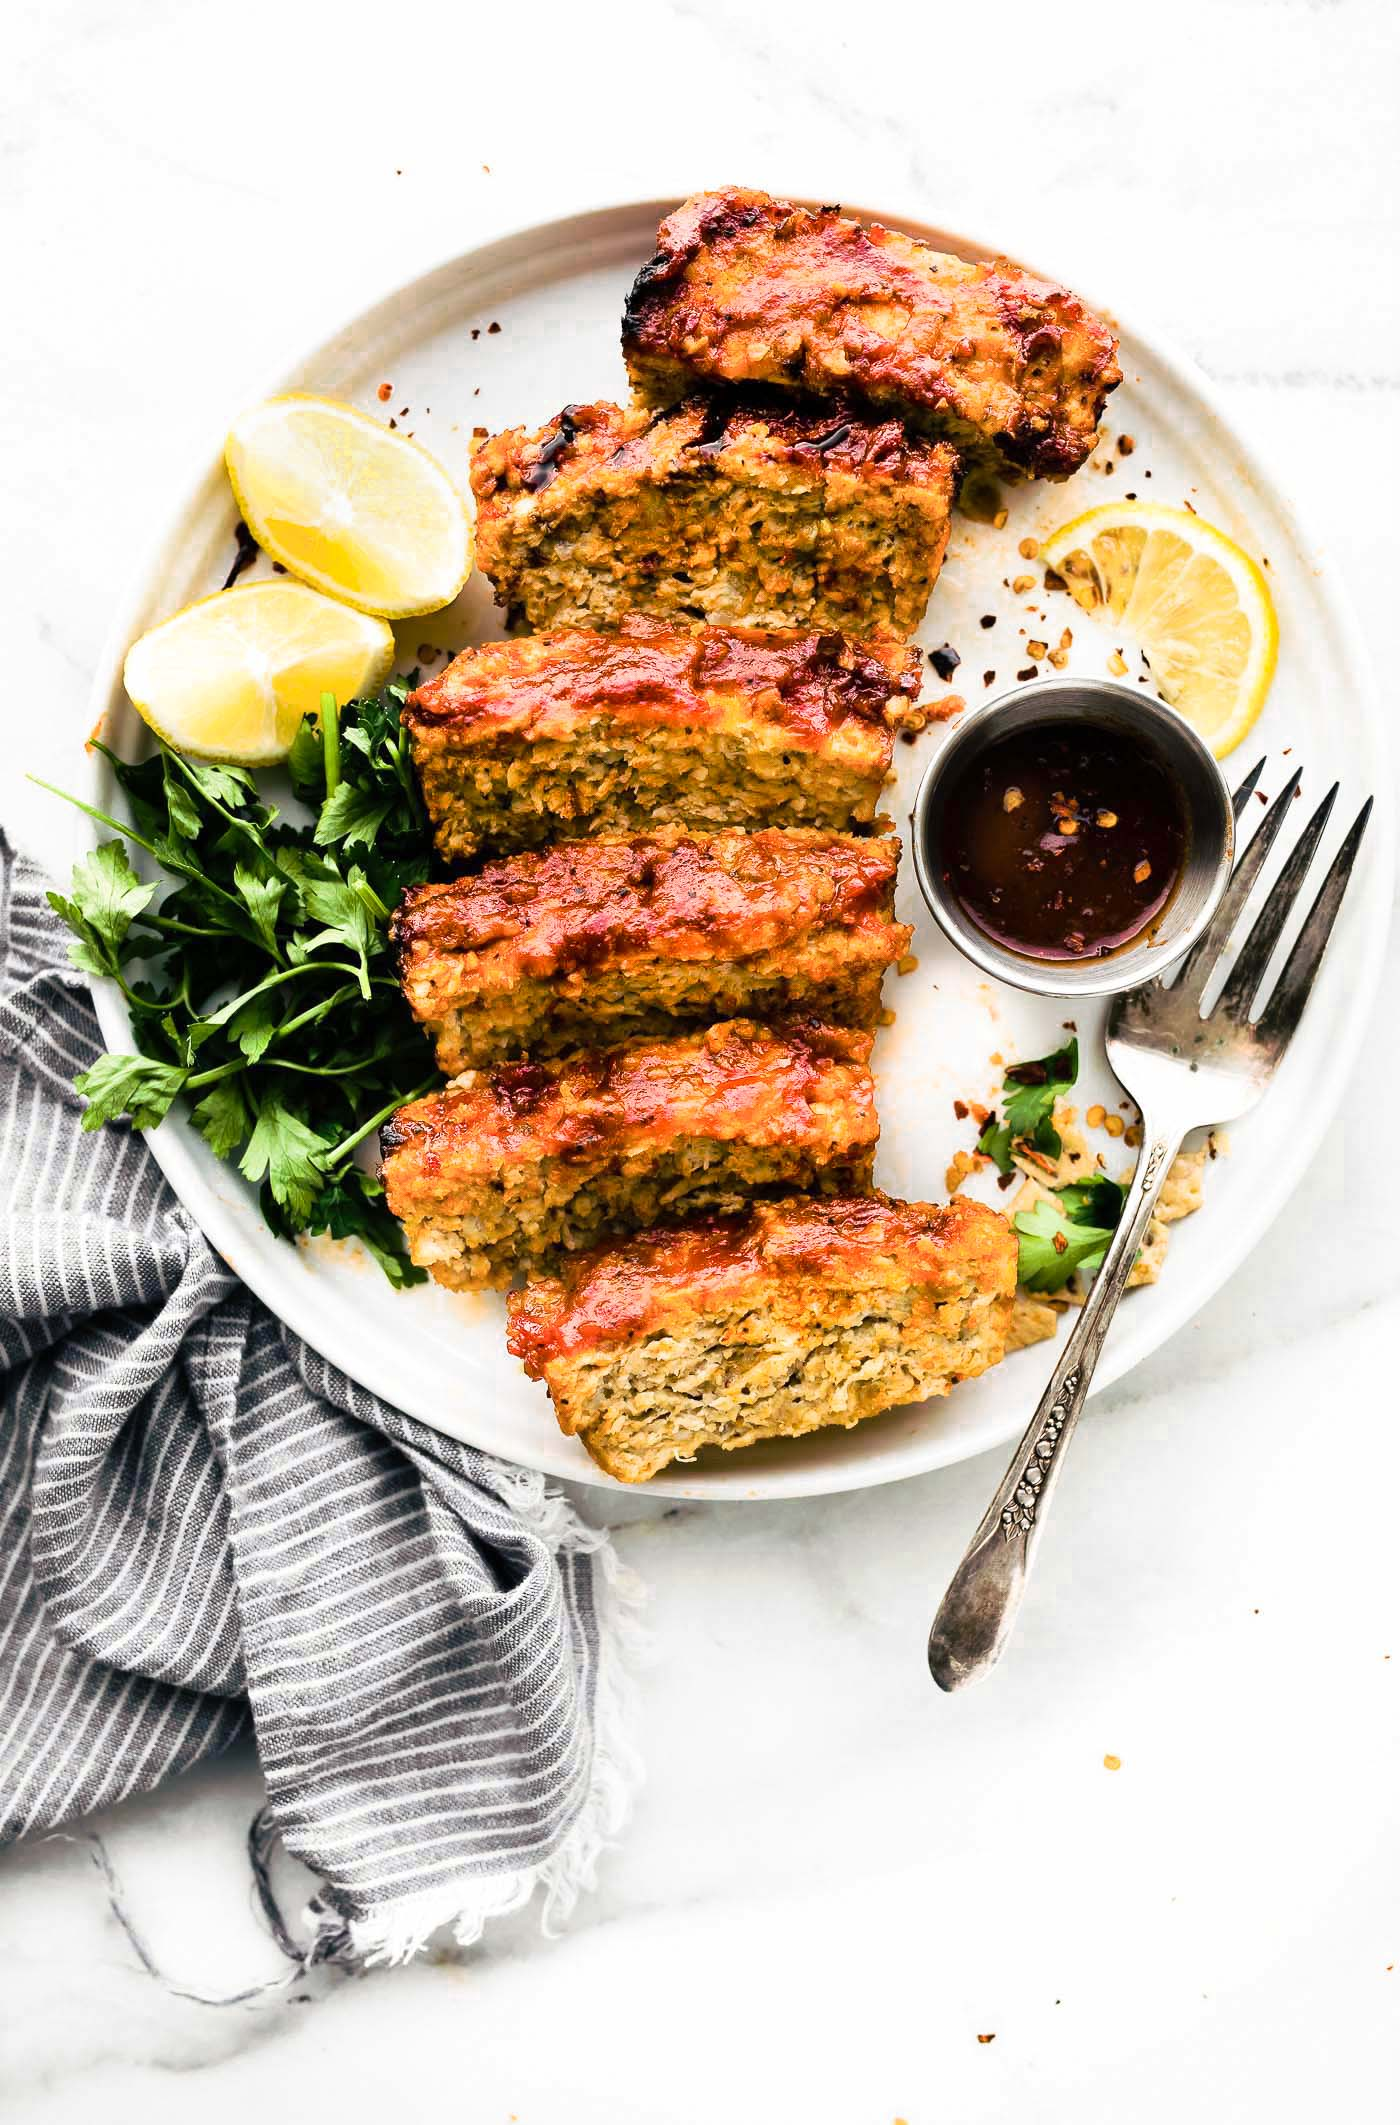 a glazedBBQ meatloaf without bread crumbs. Yep, this gluten free meatloaf recipe can be made with ground chicken, turkey, or lean beef! It's lighter than the original comfort food dish, it's easy to make, and just plain delicious! You'll find out my trick to make this flavorful without bread below. #Paleo Option #glutenfree #dinner #healthy